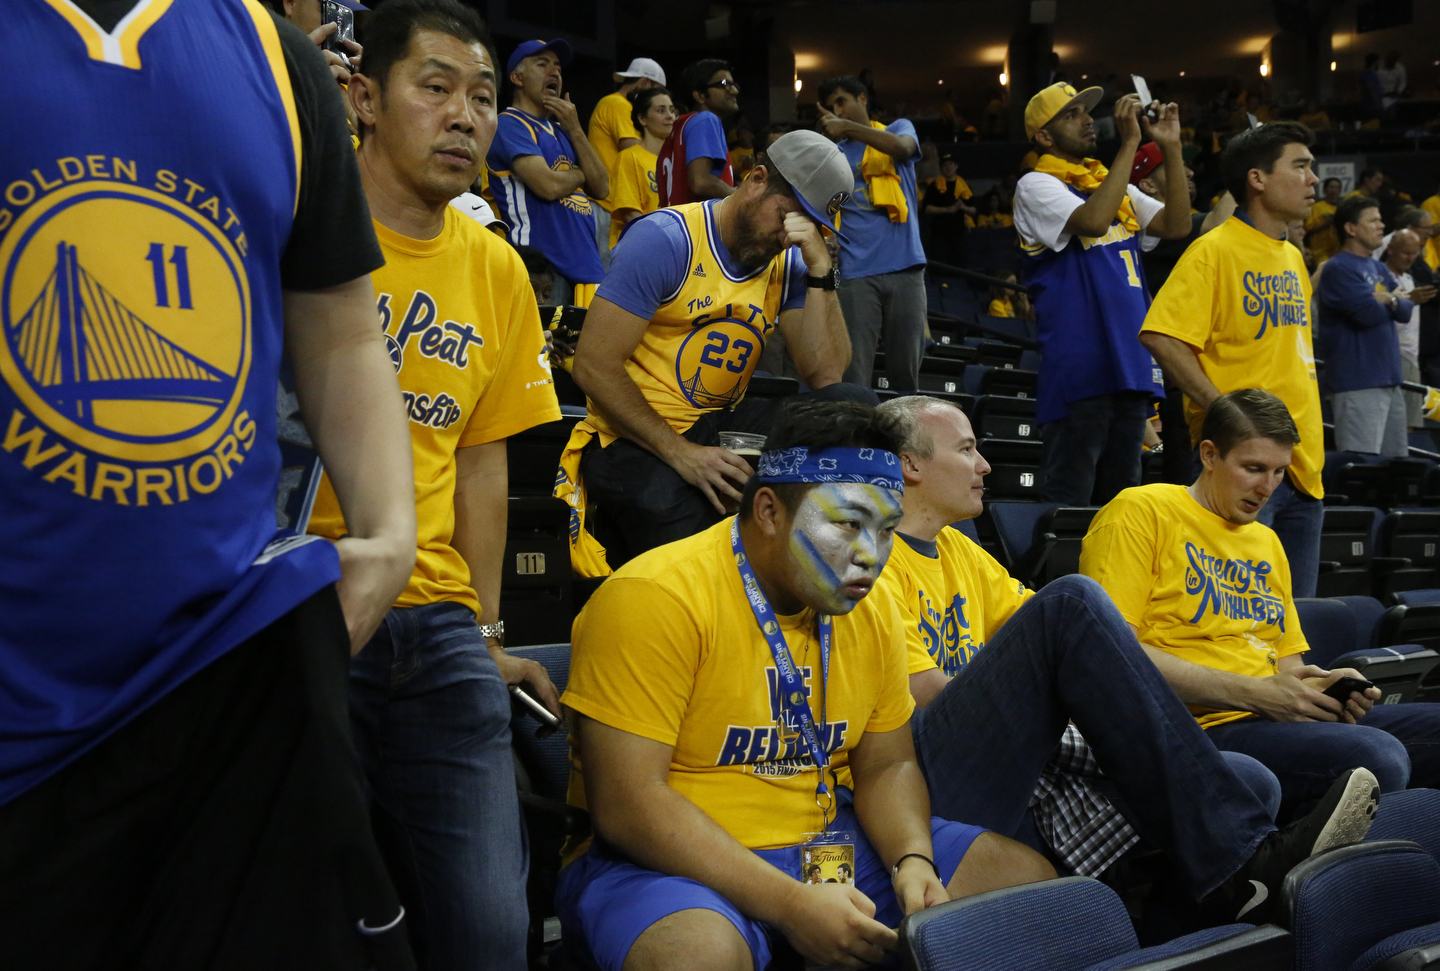 Warriors fans sit in stunned silence after the Warriors lost to the Cavaliers game 7 of the NBA Finals at the Oracle Arena June 19, 2016 in Oakland, Calif.